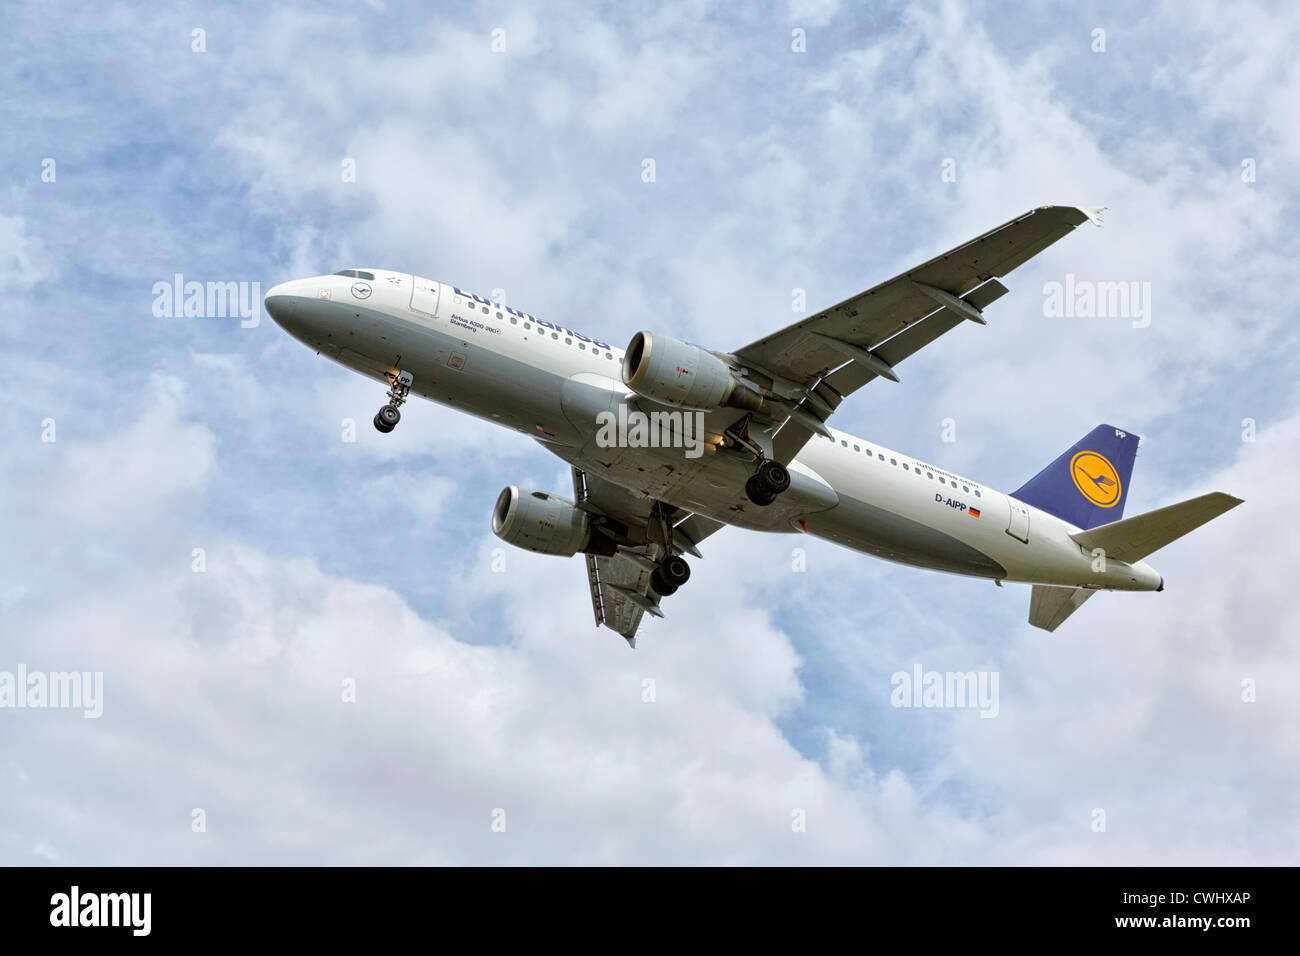 An Airbus A320 of the German airline Lufthansa of final approach - Stock Image